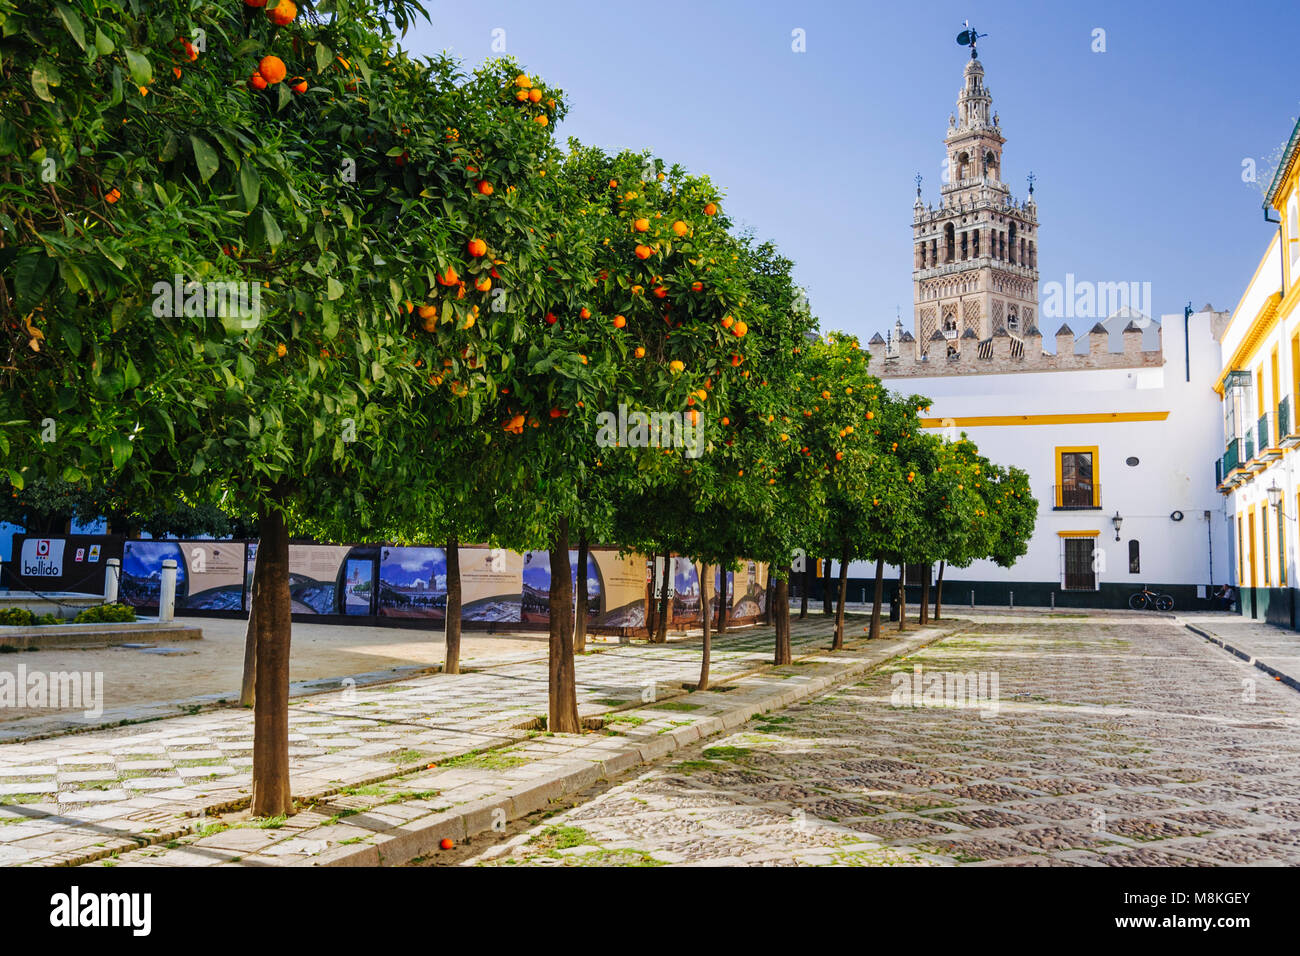 Seville, Andalusia, Spain : Orange trees at Patio de Banderas square in Santa Cruz district with Giralda bell tower - Stock Image